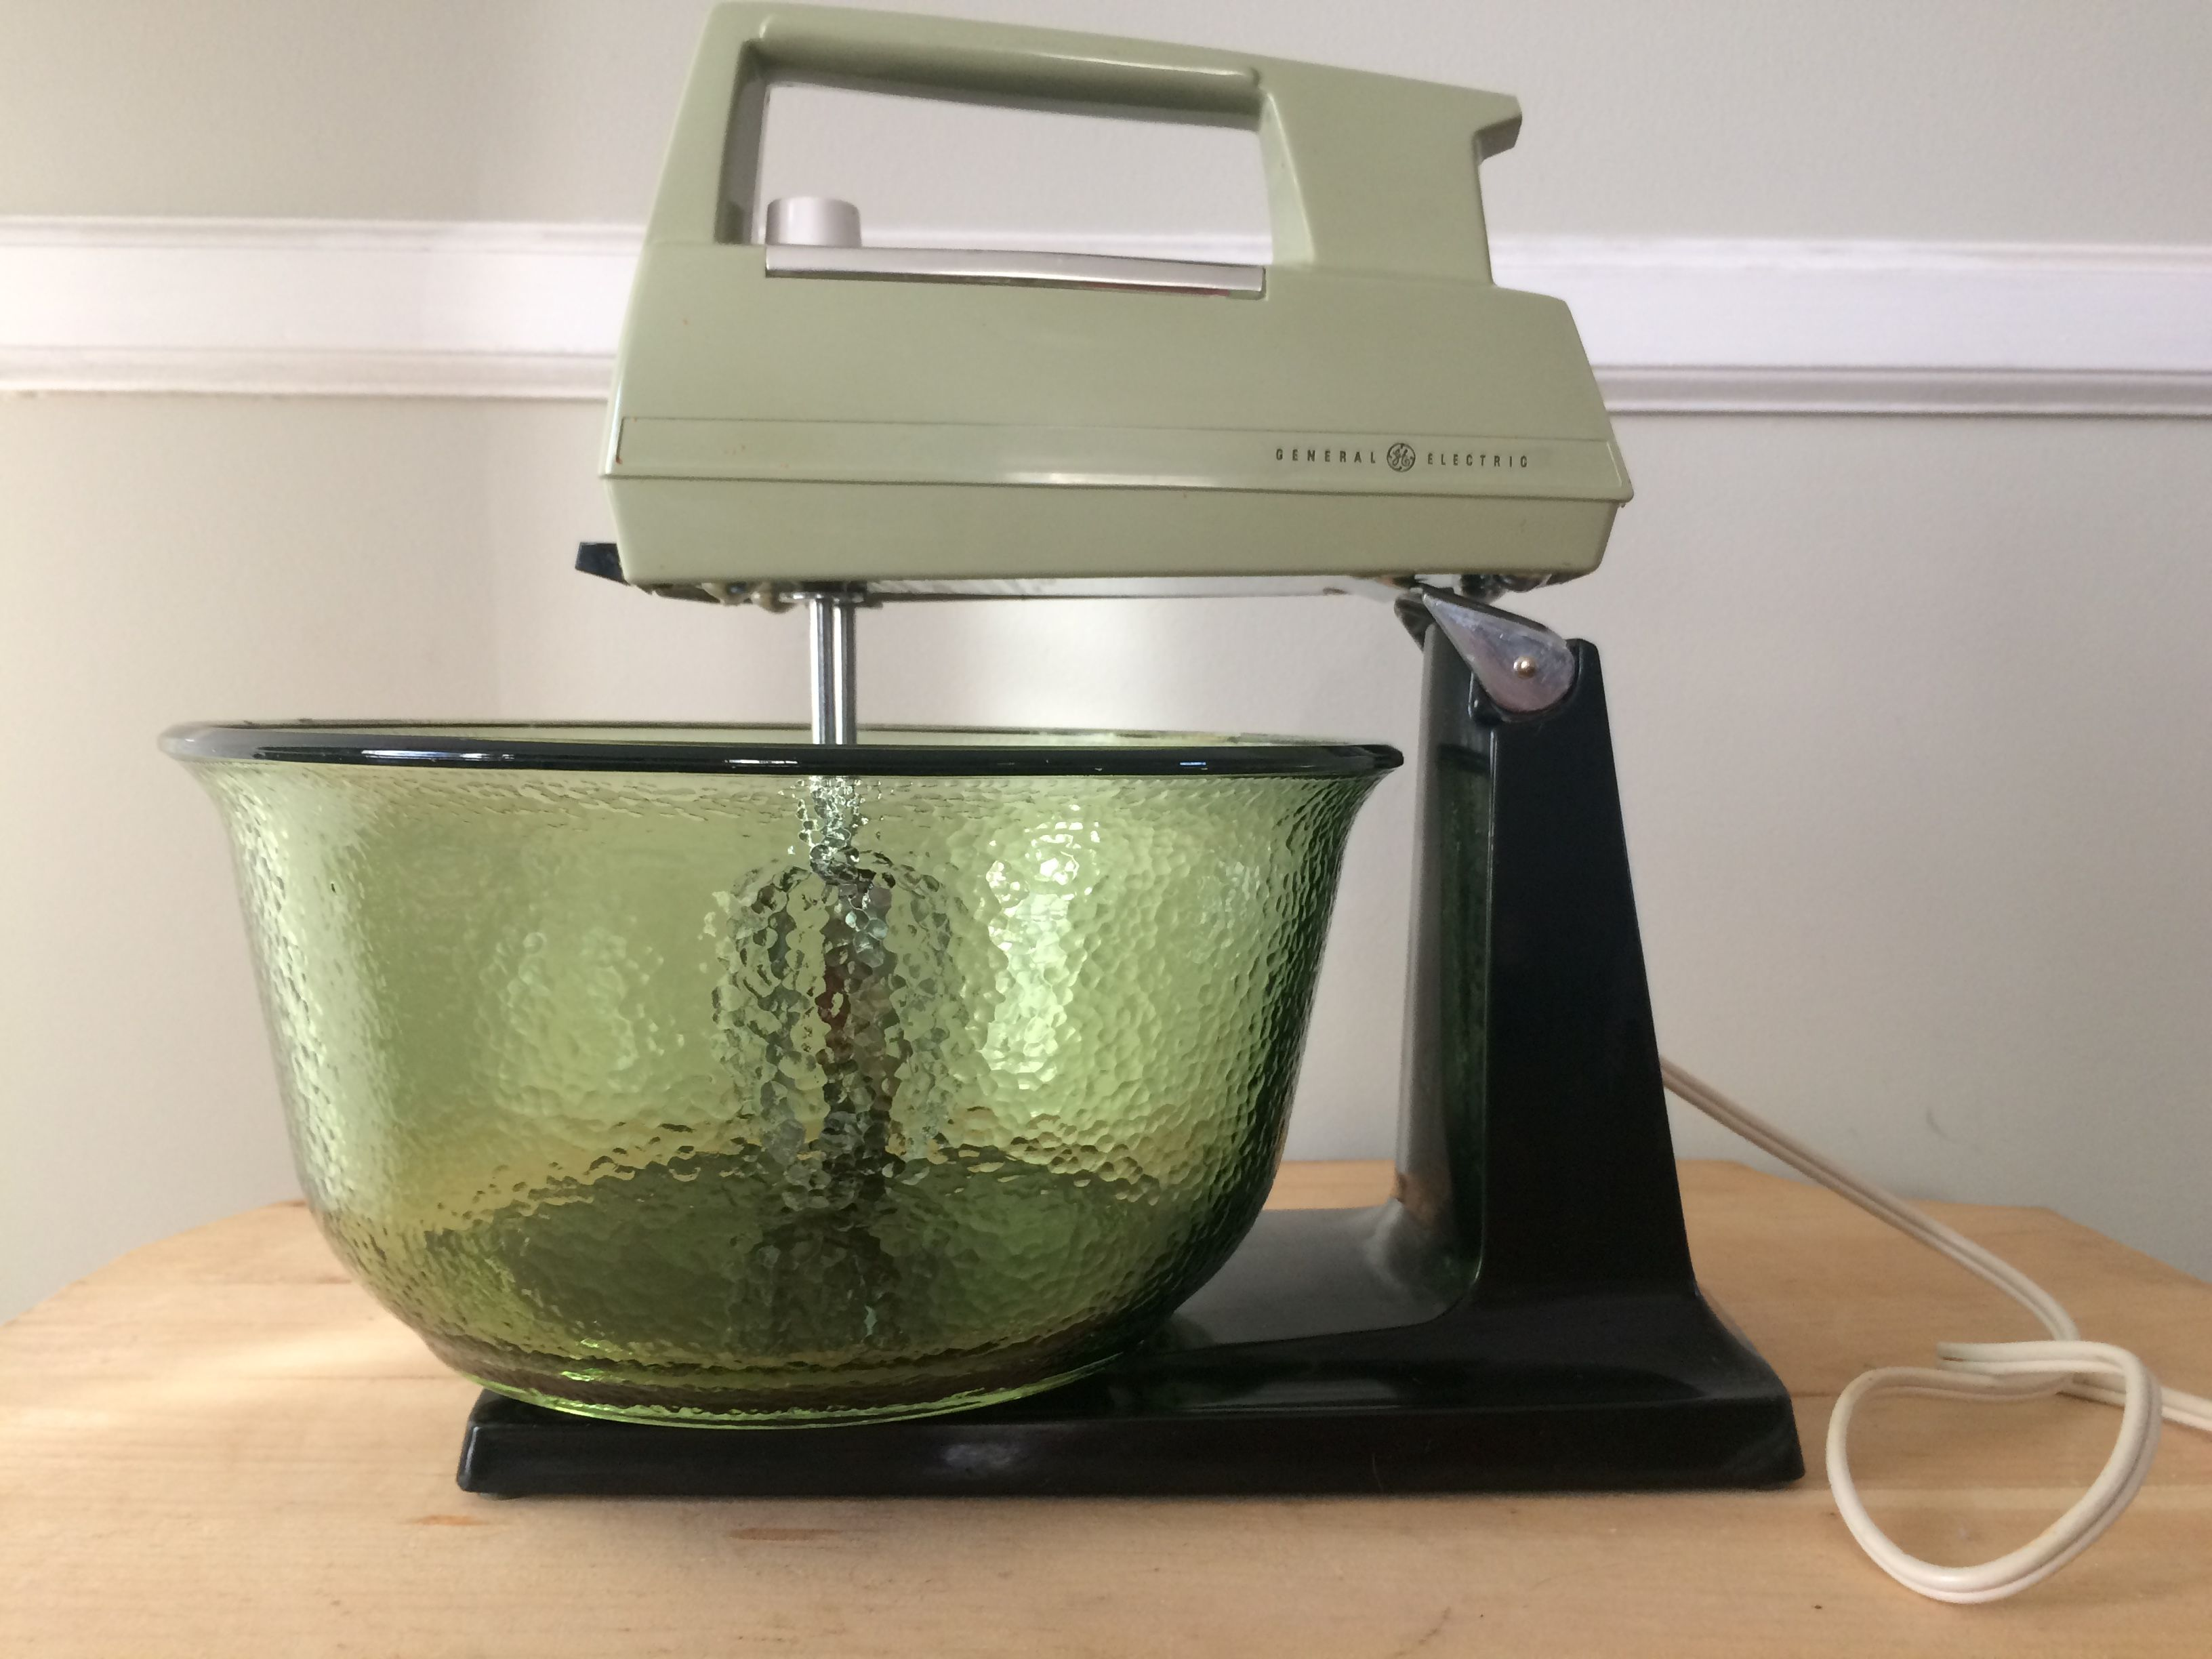 Superbe Vintage General Electric Stand Mixer, 12 Speed, Original Large Green Mixing  Bowl, Retro